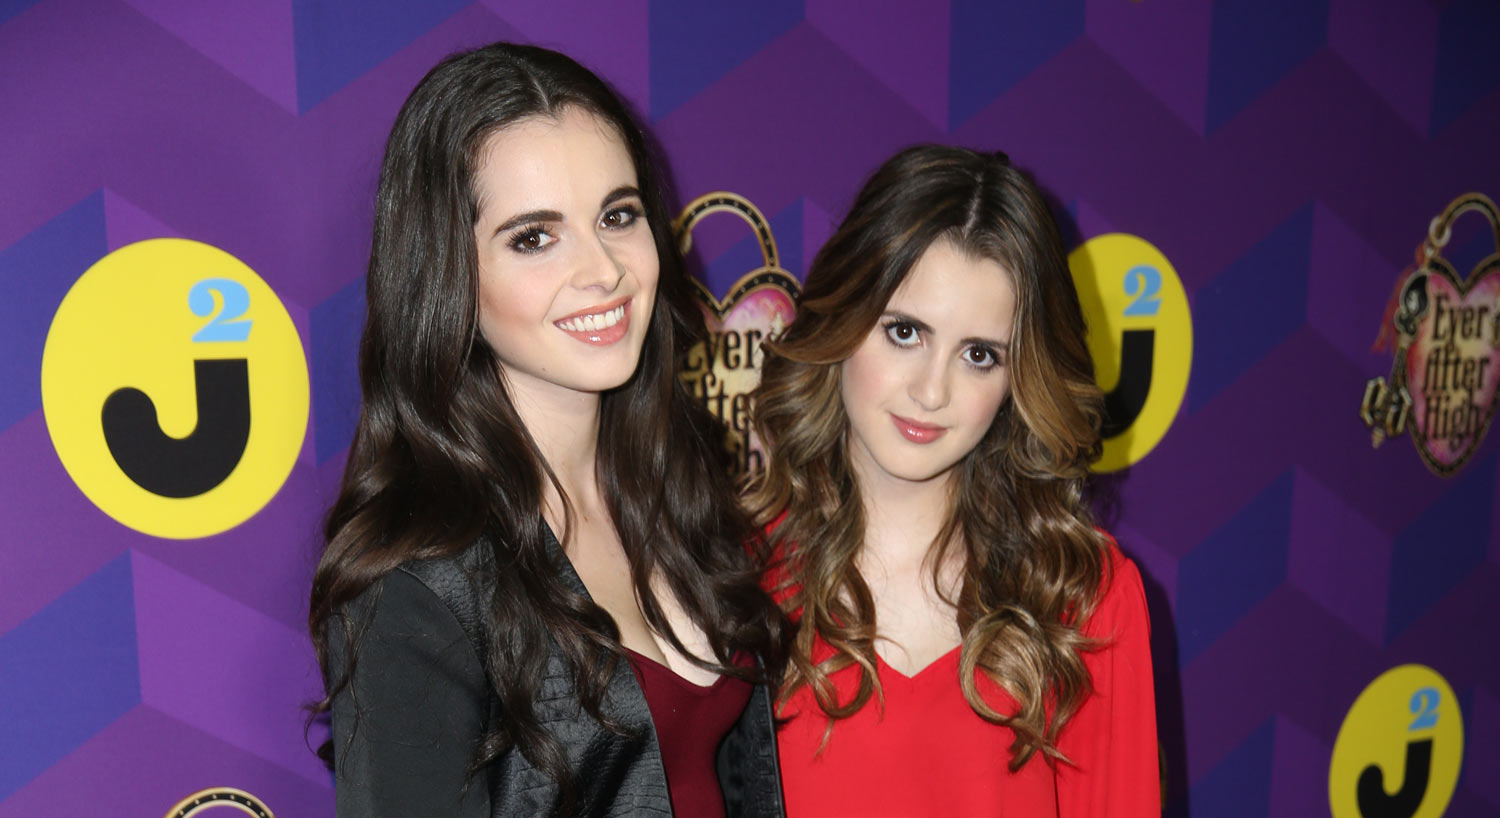 China mcclain breaking news and photos just jared jr page 5 - Vanessa Laura Marano Make It To Wonderland At Just Jared S Party Presented By Ever After High